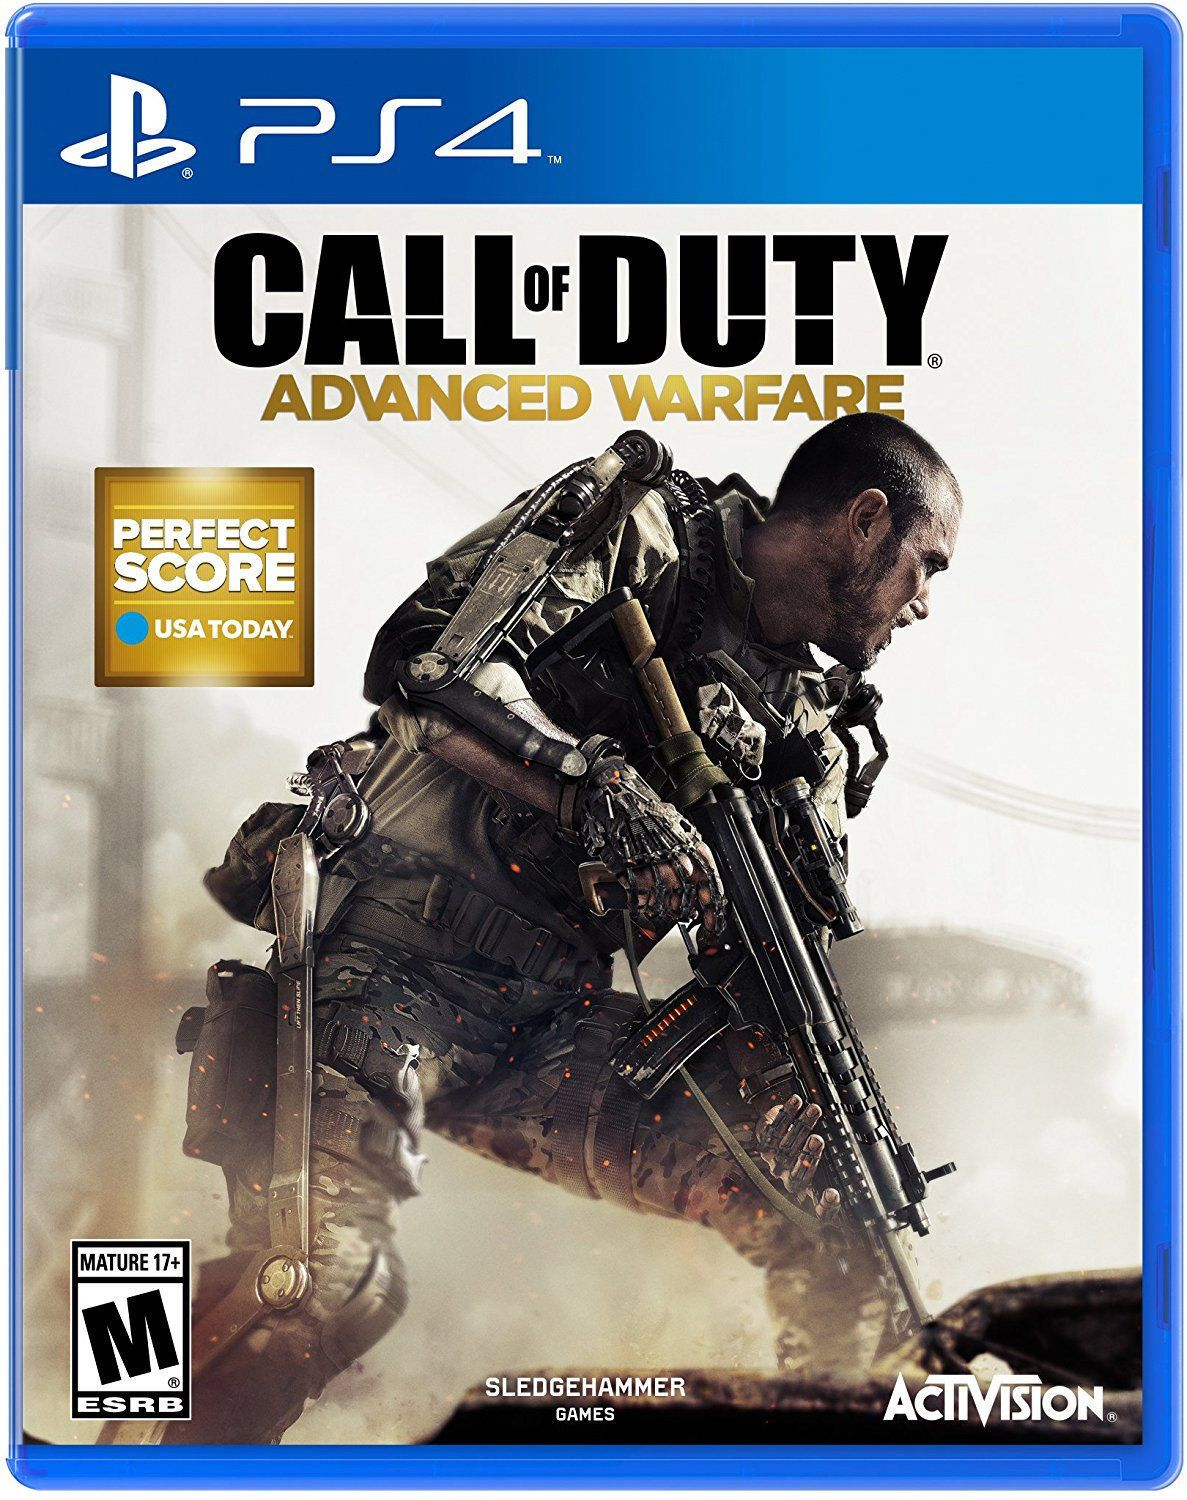 Call Of Duty Advanced Warfare Ps4 Factory Refurbished With